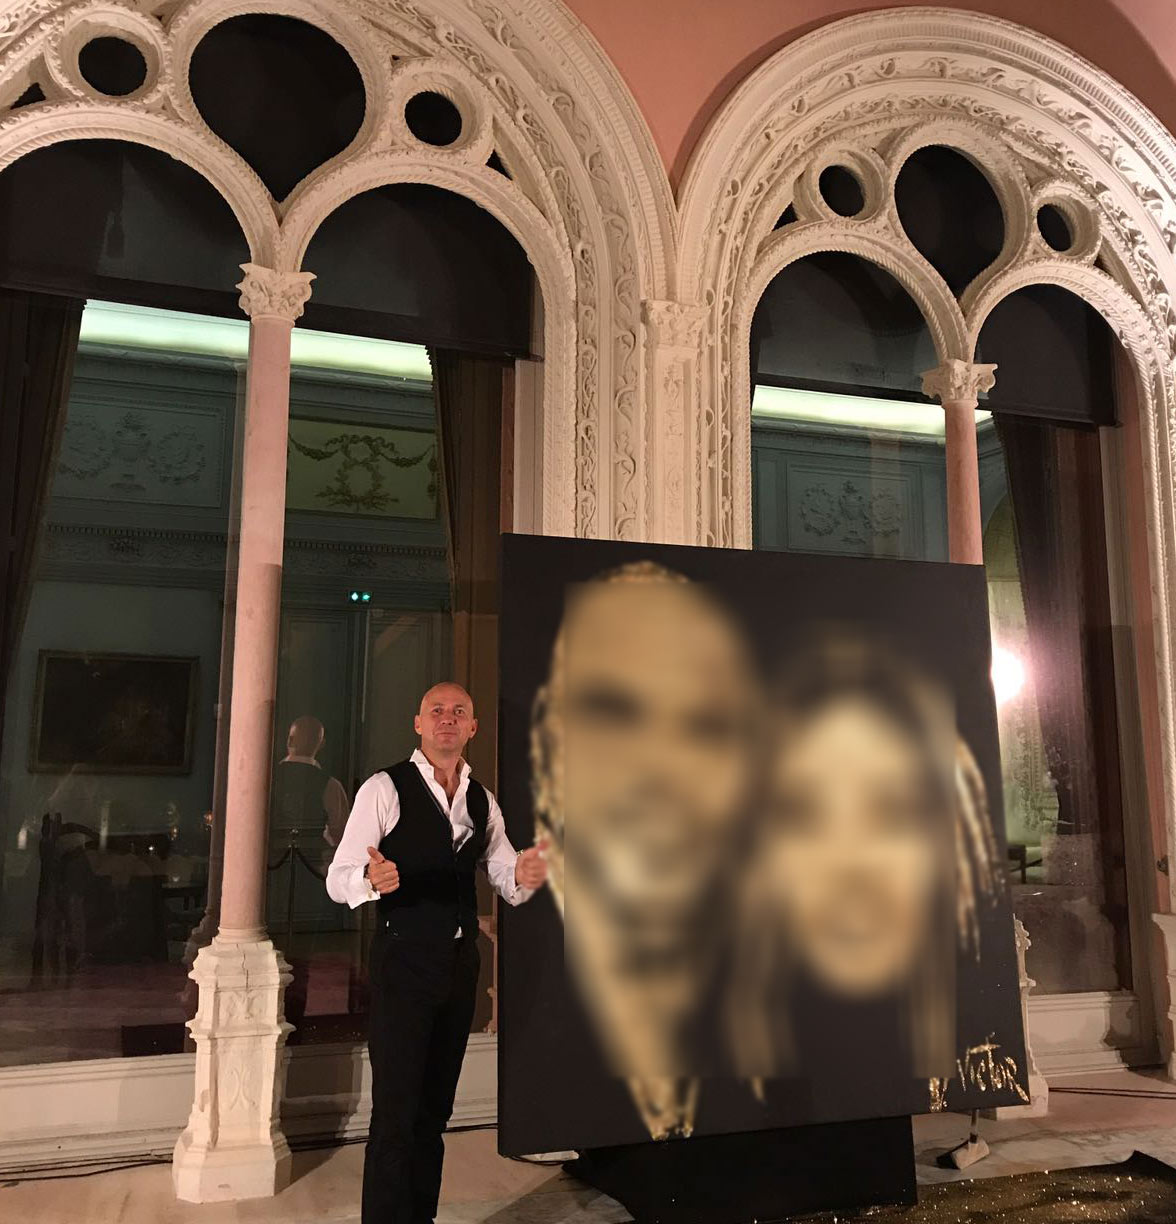 Wedding event performance in France